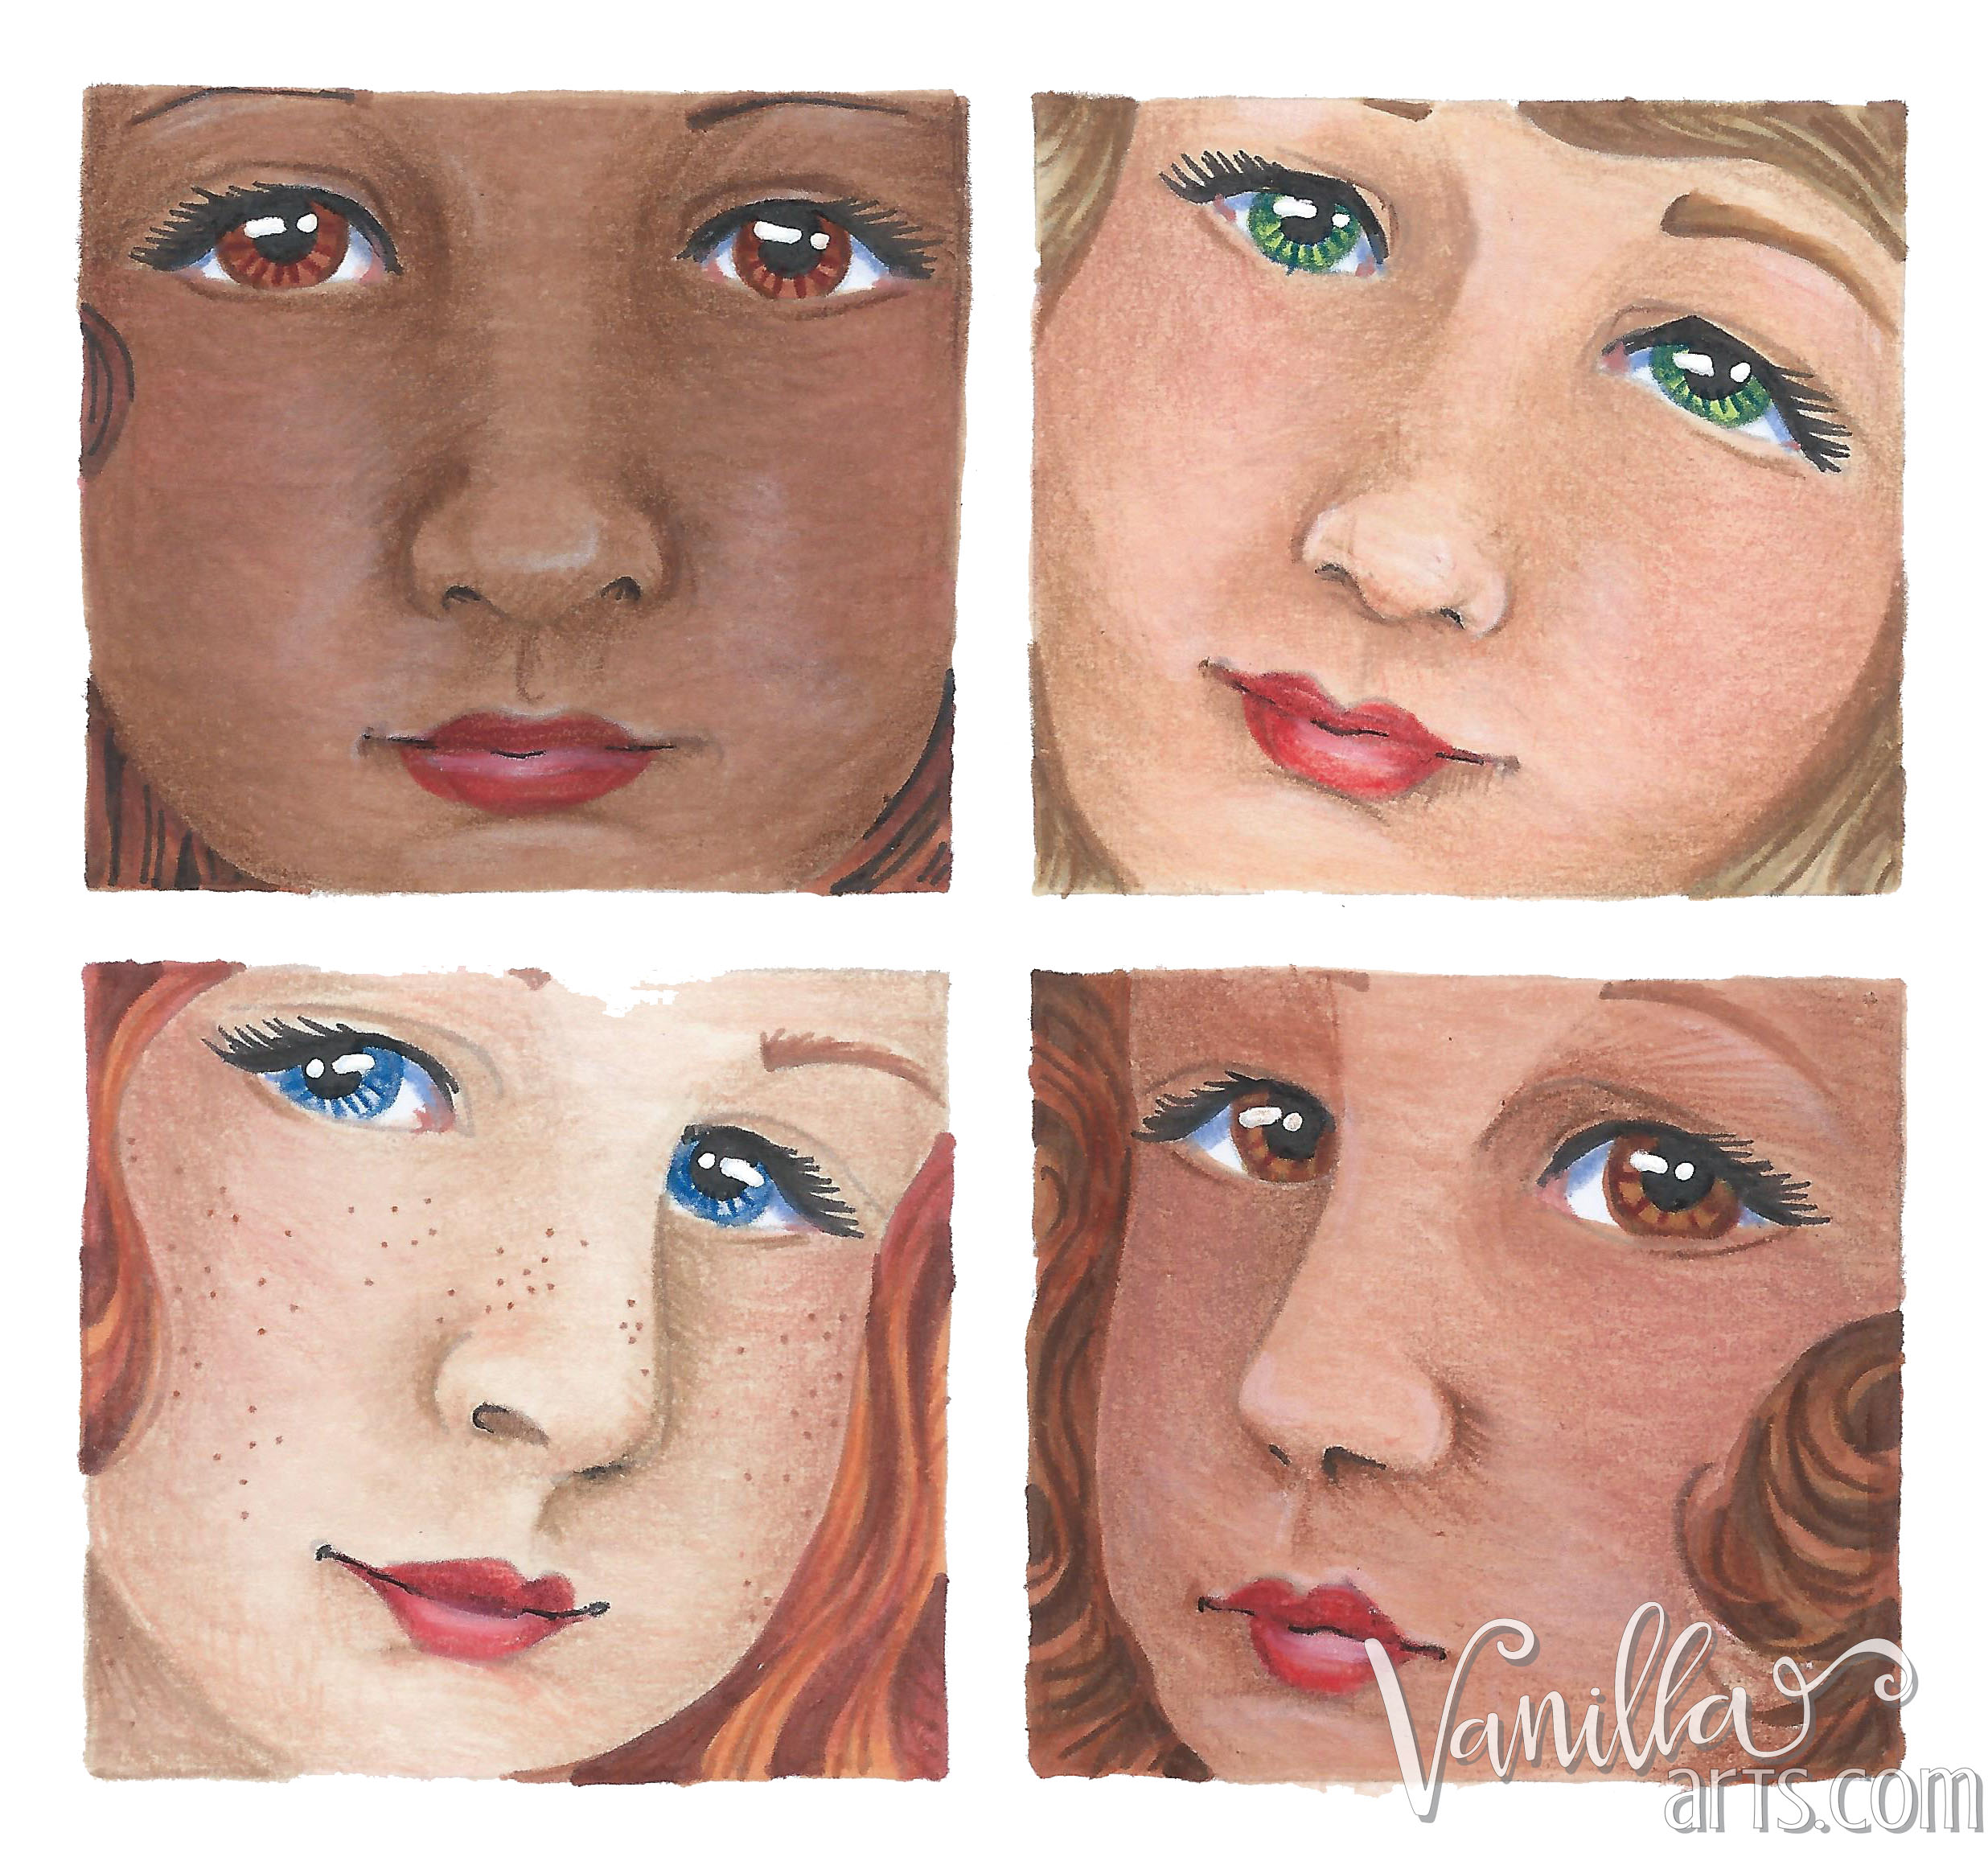 Four Little Girls coloring by VanillaArts.com